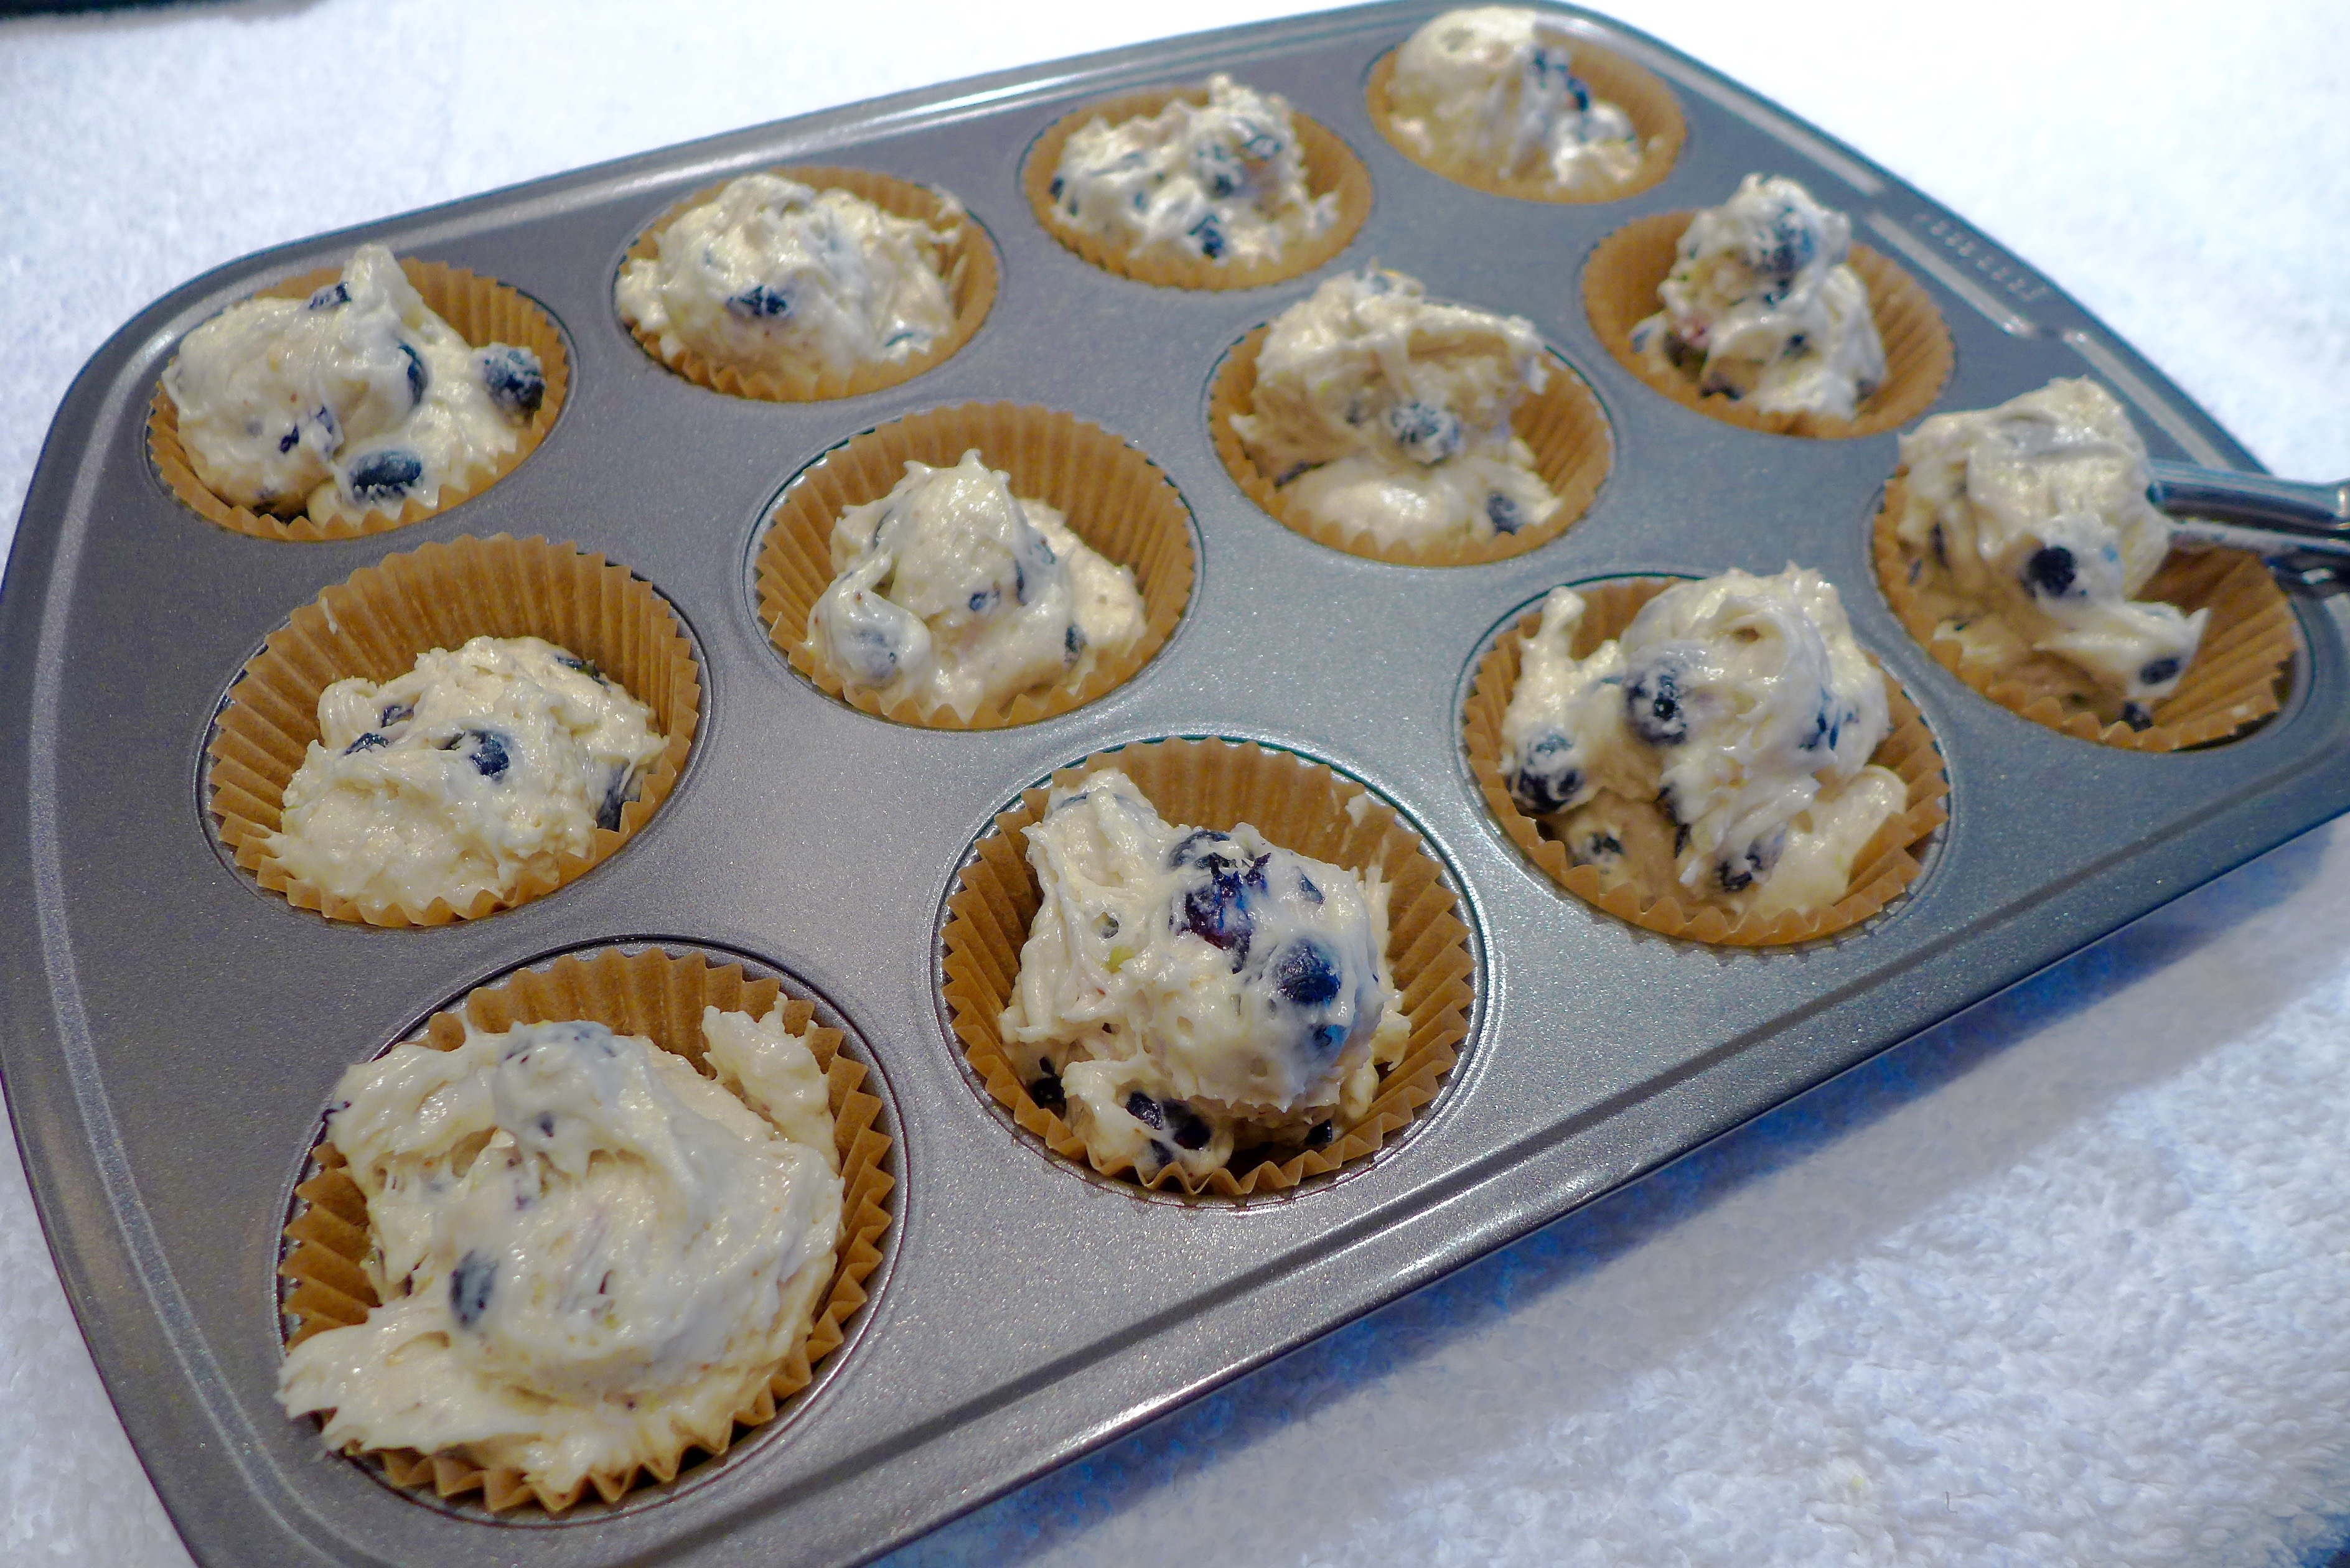 Use a small ice cream scoop or tablespoon to fill muffin cups. Don't worry if batter is slightly above the line of paper. It will settle in as it bakes. The muffins look prettiest if you don't mash down the batter into the cups.